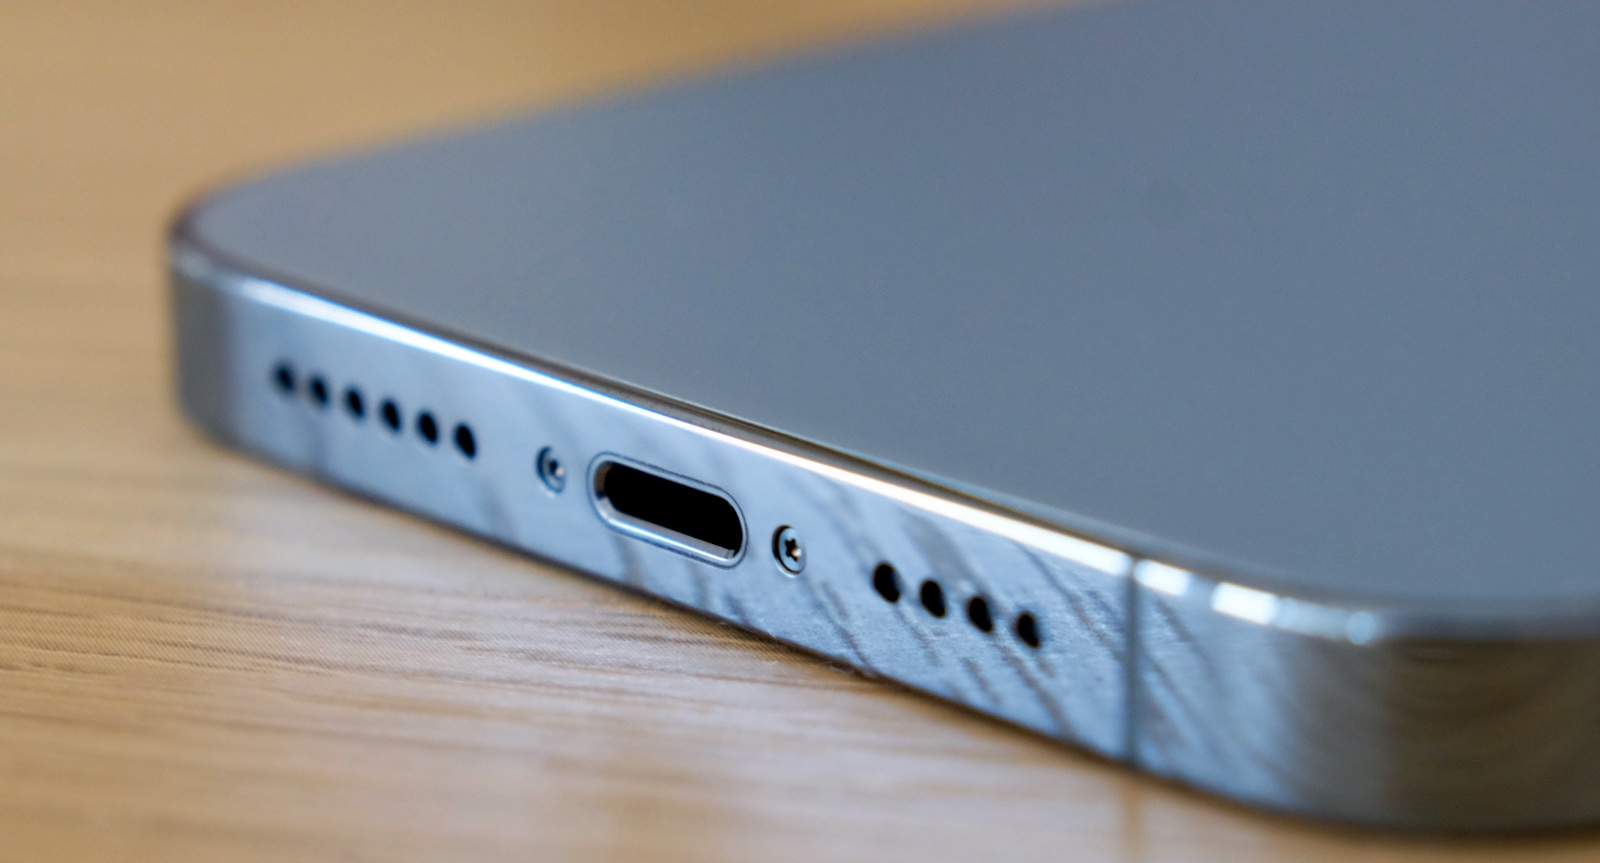 Sorry, no USB-C. You still get Lightning ports on these new iPhones.